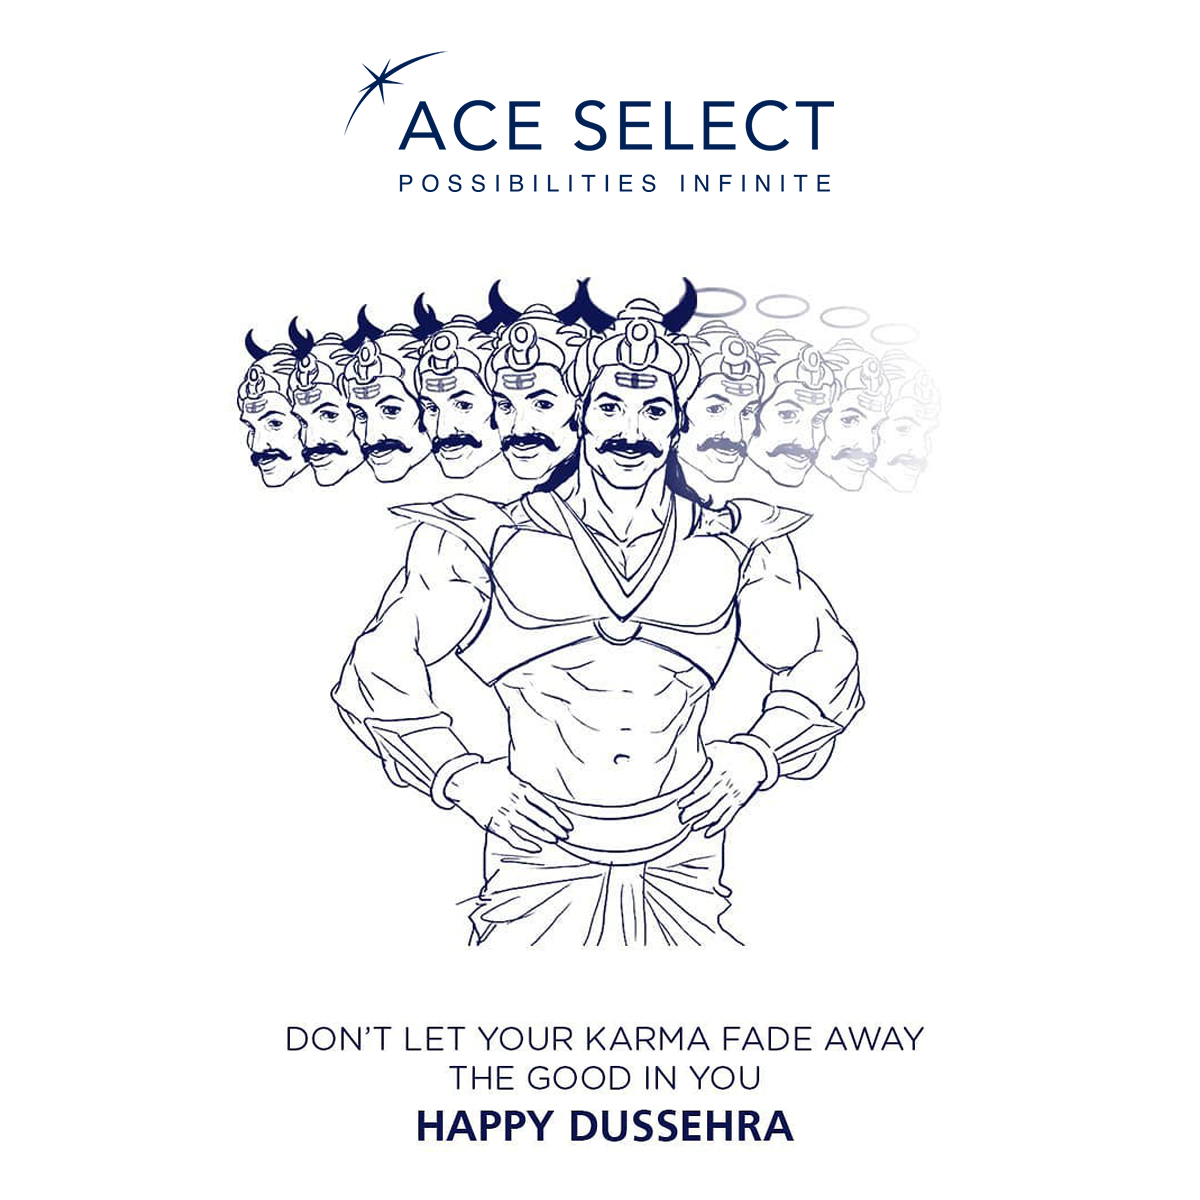 May God Ram keep lighting your path of success and may you achieve victory in every phase of life. Wish you a Happy Maha Navami and Dussehra!! from @ace_select . . . #ace_select #aceselect #ace #dussehra #india #navratri #festival #happydussehra #dussehraspecial #durgapuja